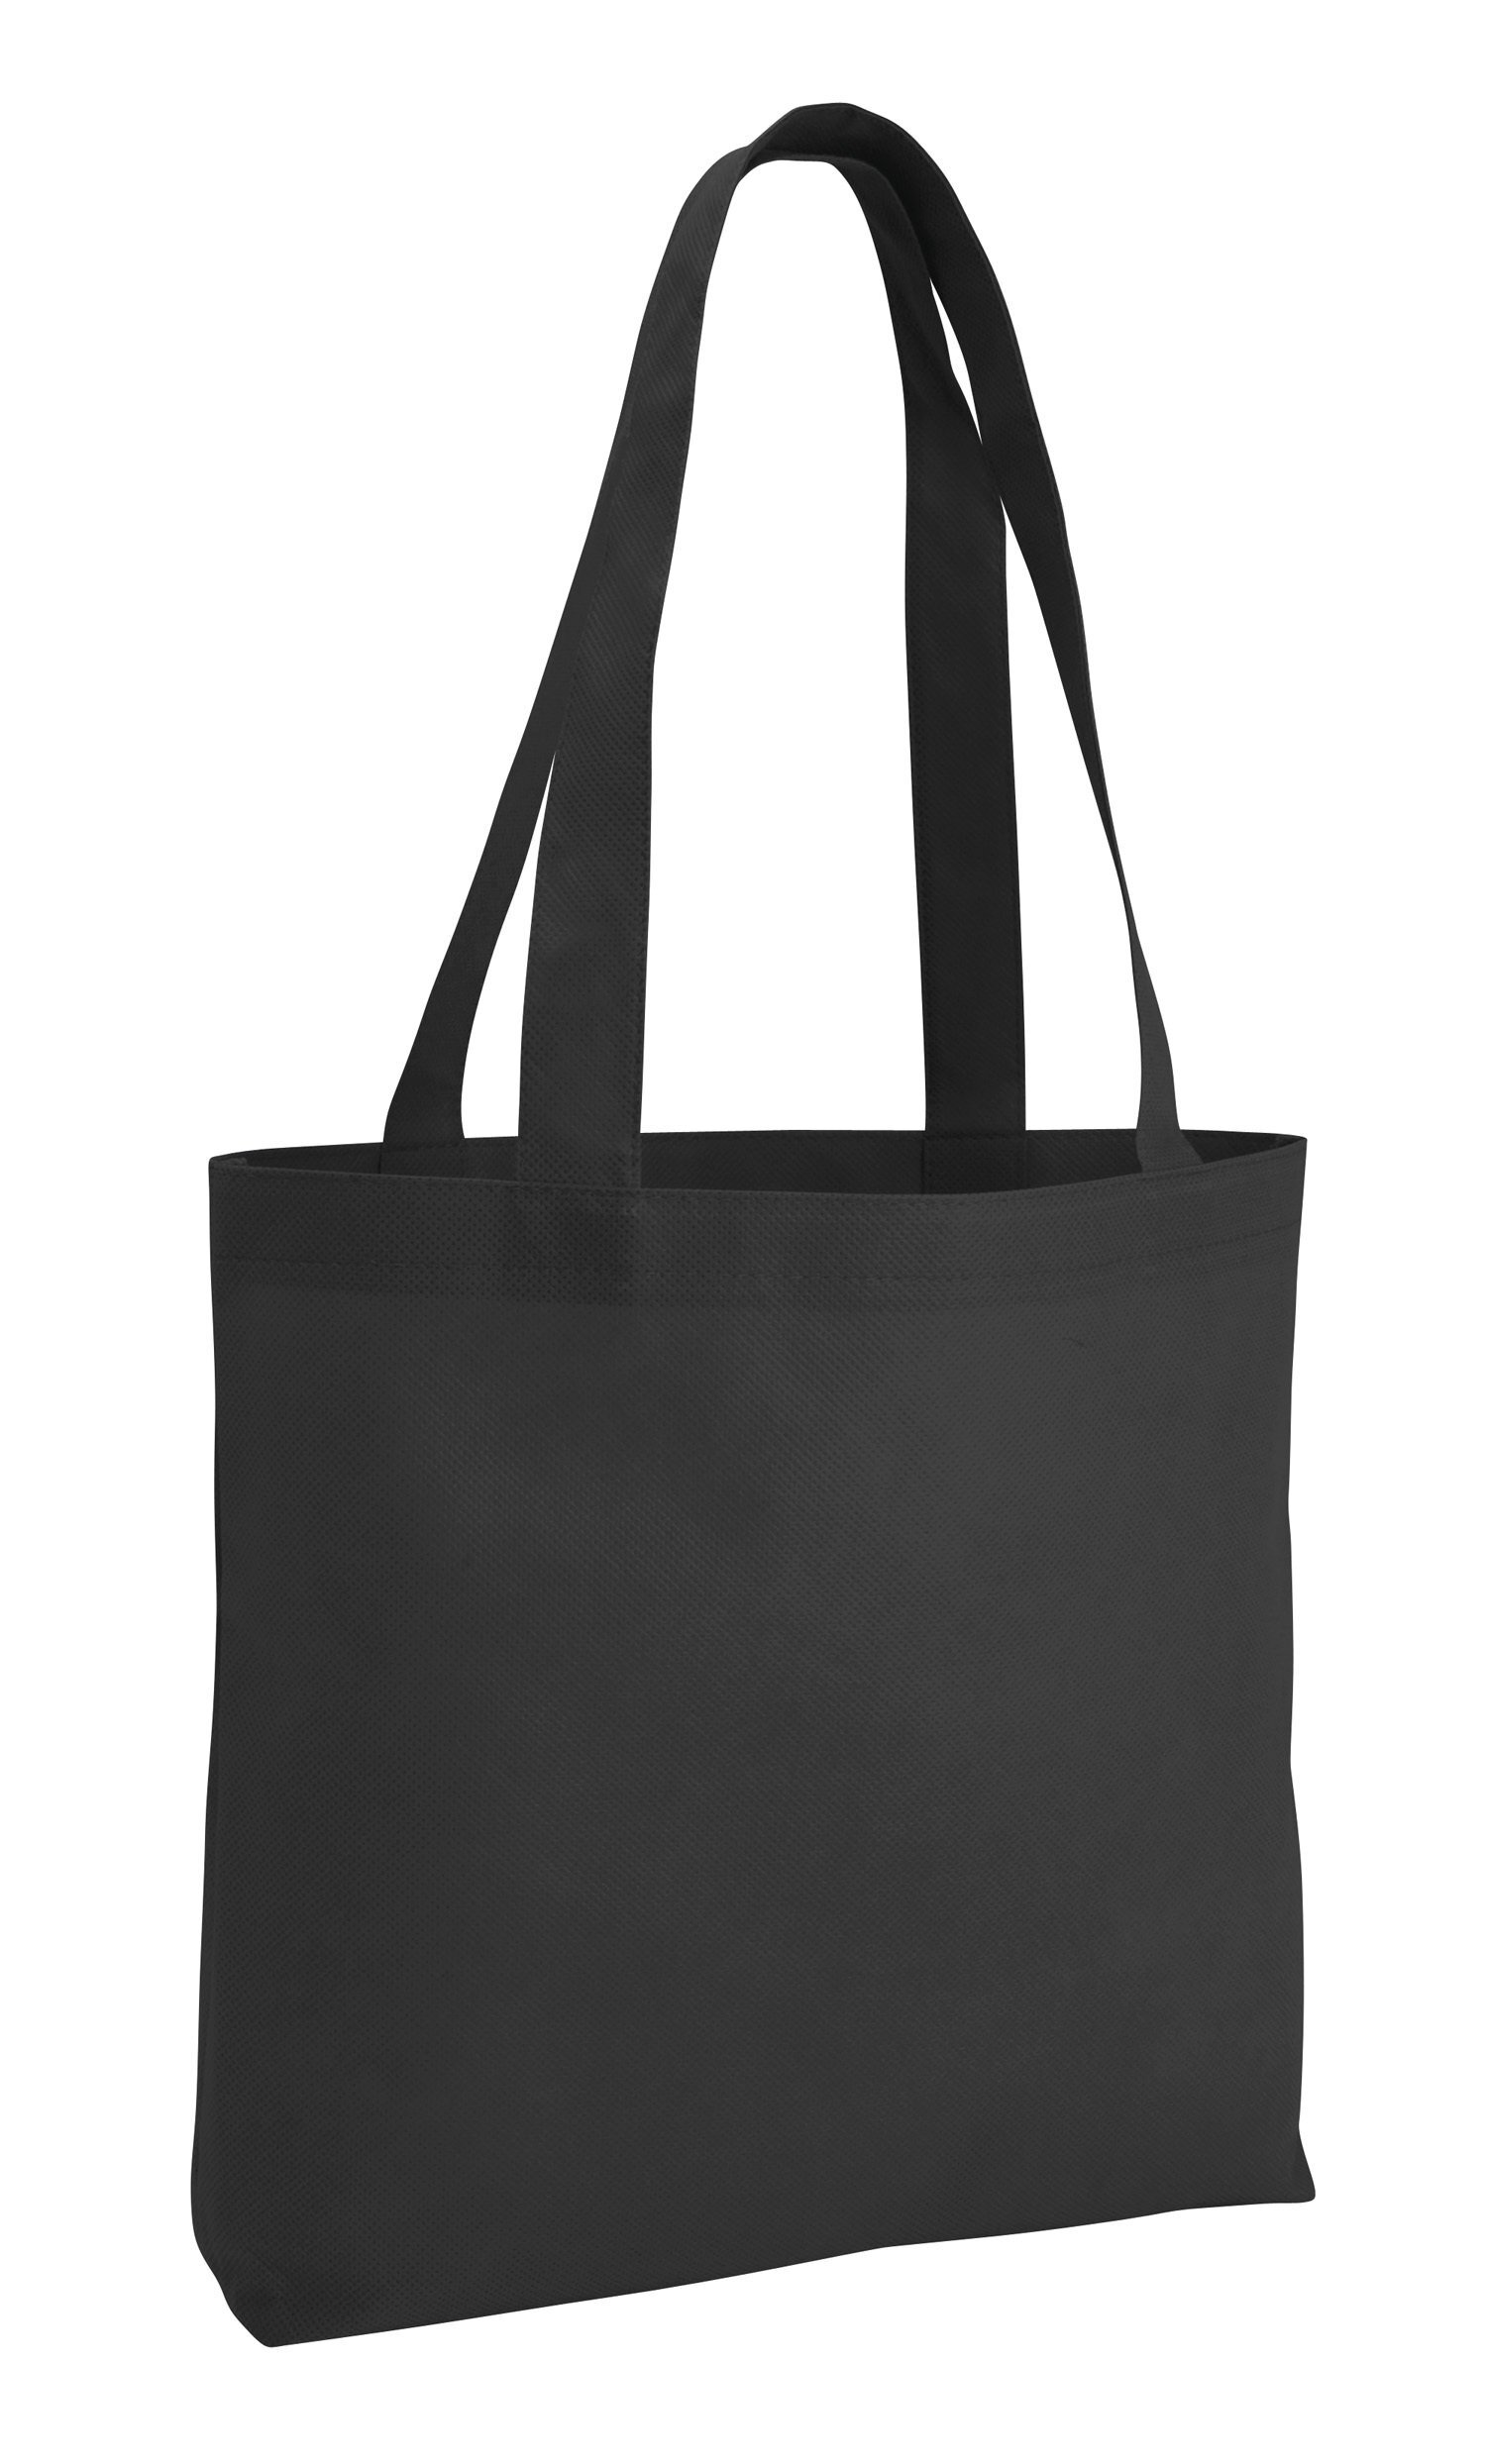 Poly Pro Gusseted Tote